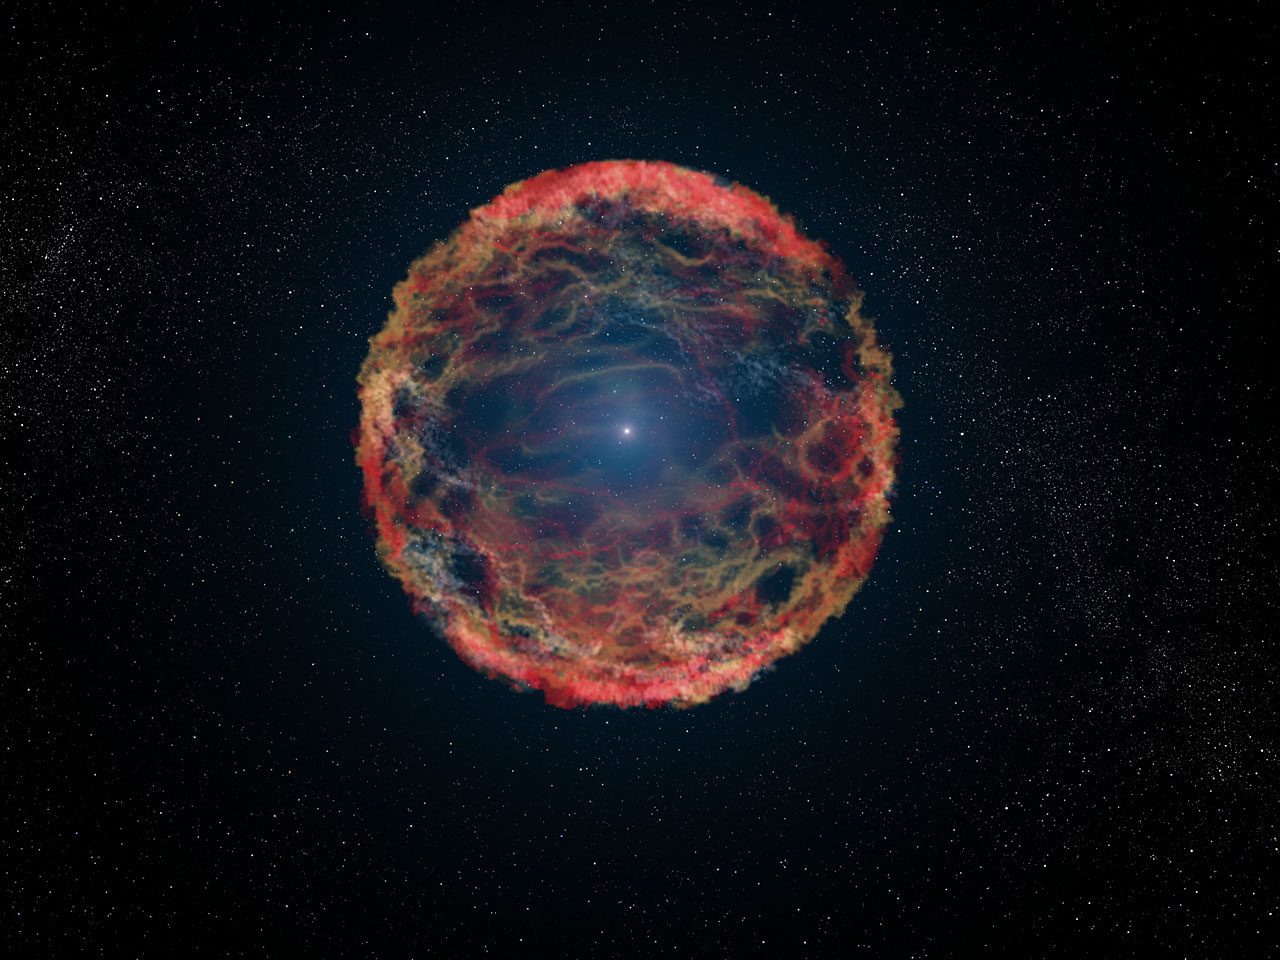 Artist's impression of supernova 1993J | ESA/Hubble